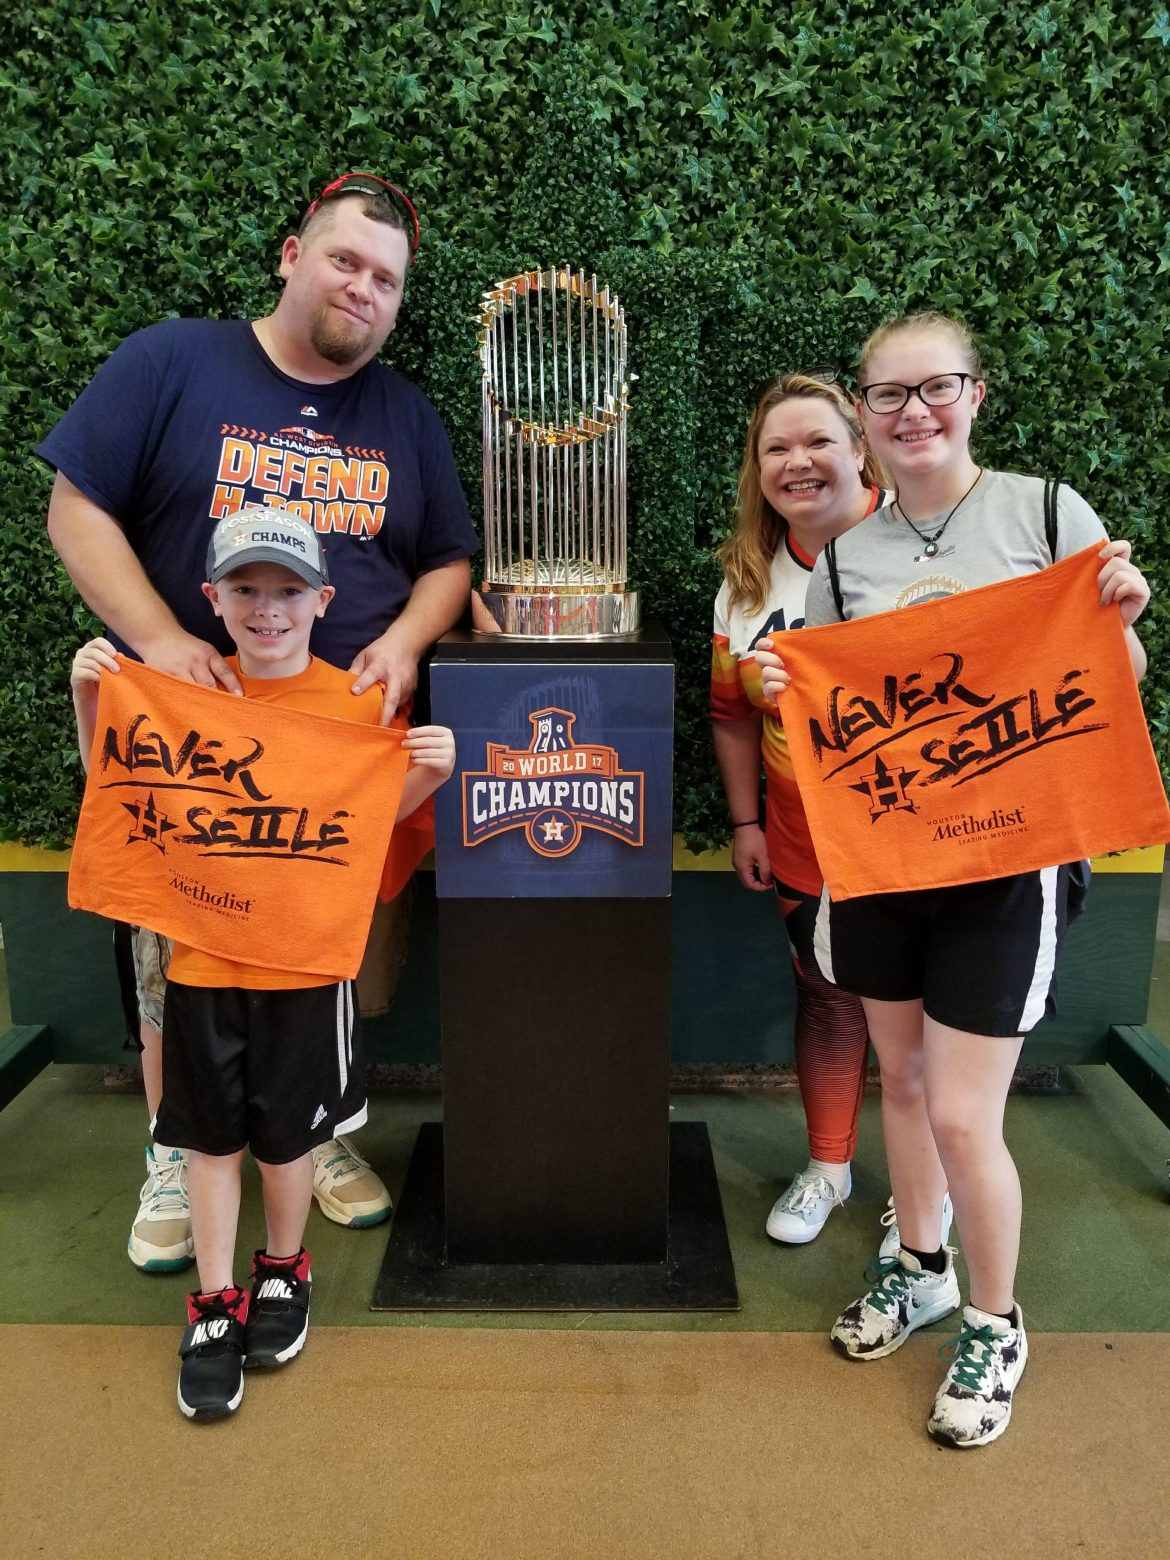 My Top Houston Astros Things and Moments + Gift Ideas For Astros Fans